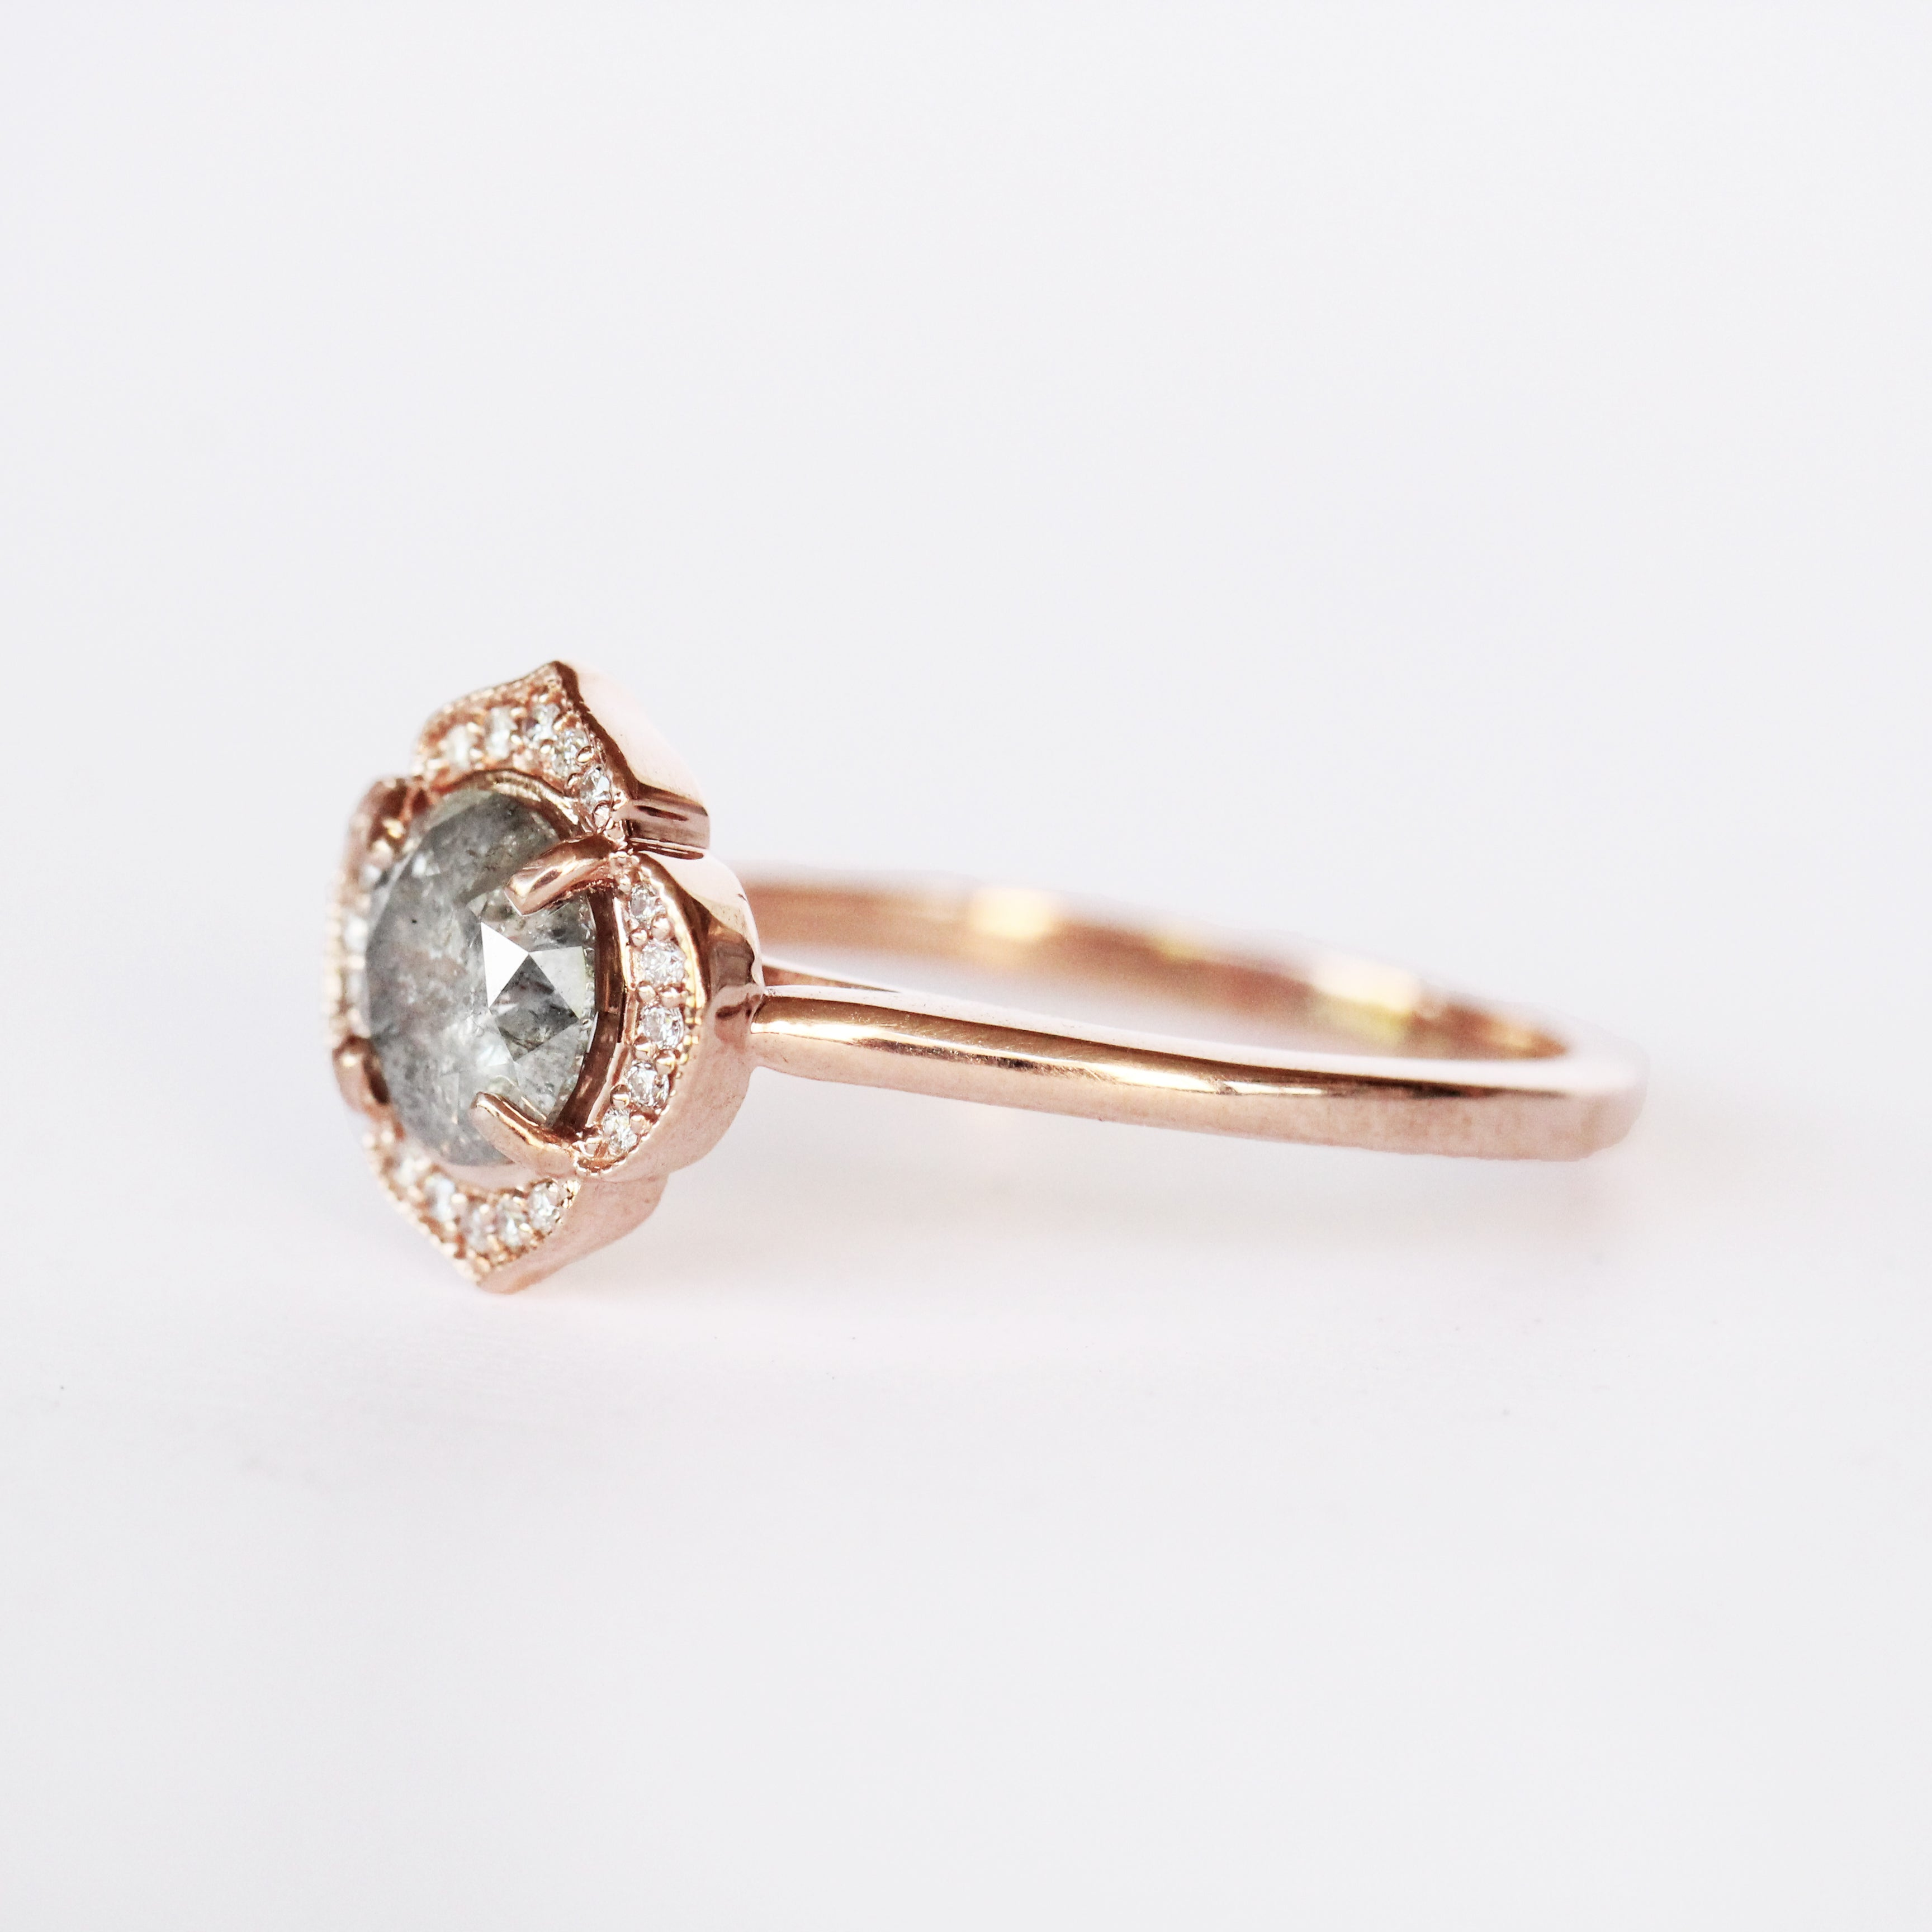 Clementine Ring with a 1.25ct Celestial Diamond in 10k Rose Gold - Ready to Size and Ship - Celestial Diamonds ® by Midwinter Co.